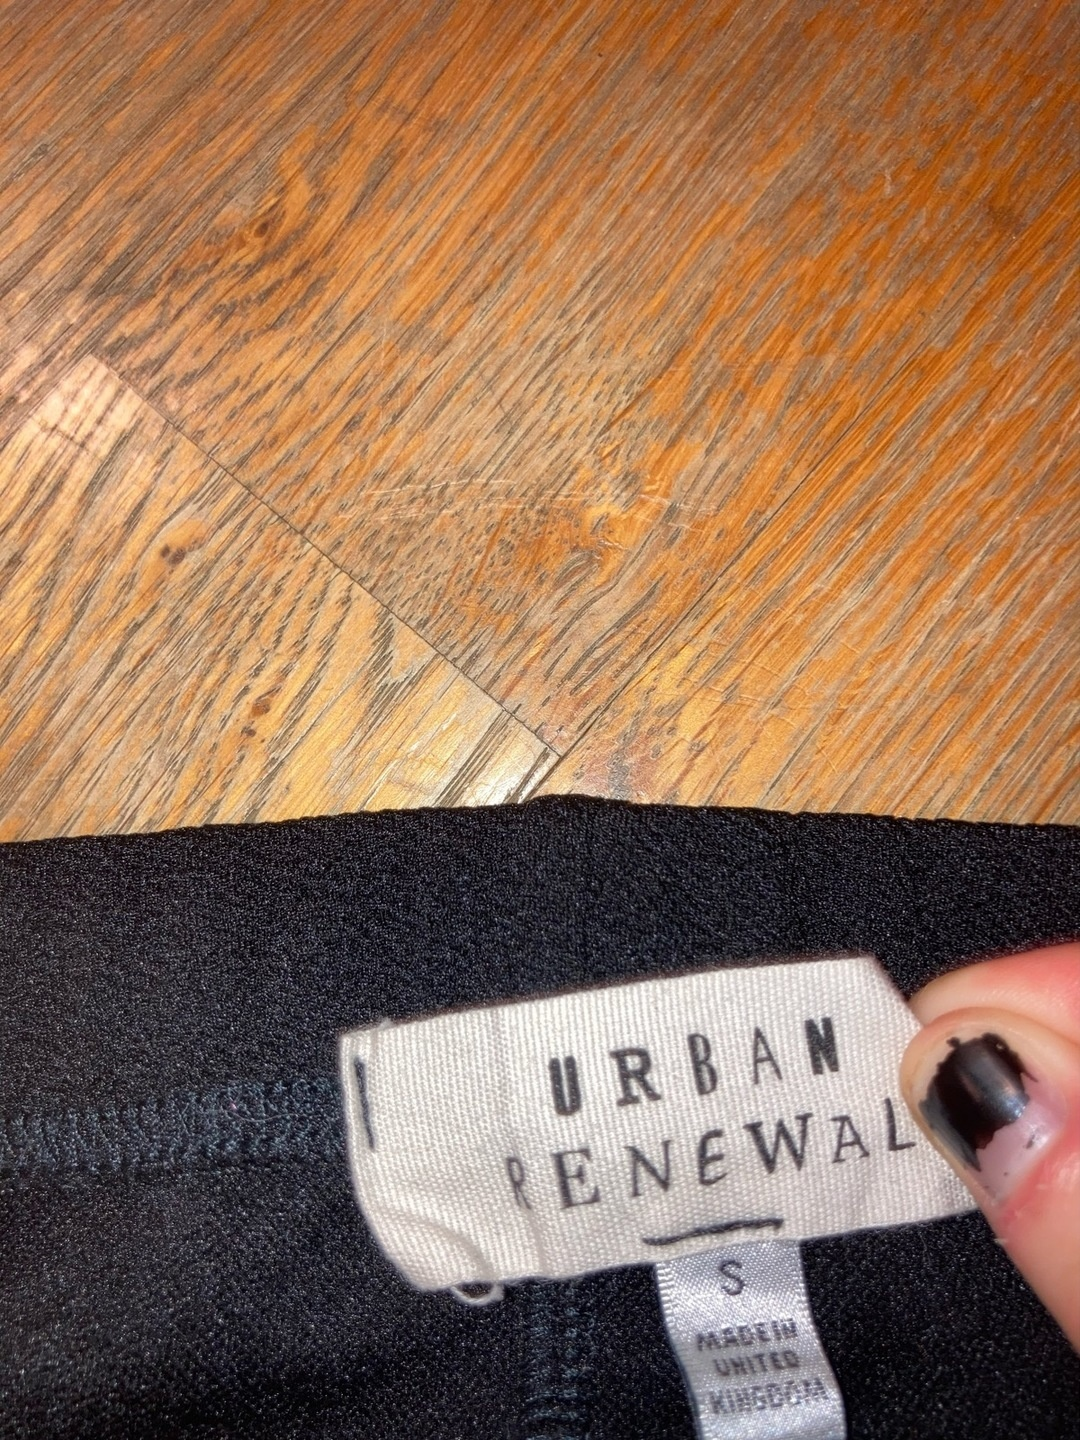 Women's trousers & jeans - URBAN OUTFITTERS photo 2